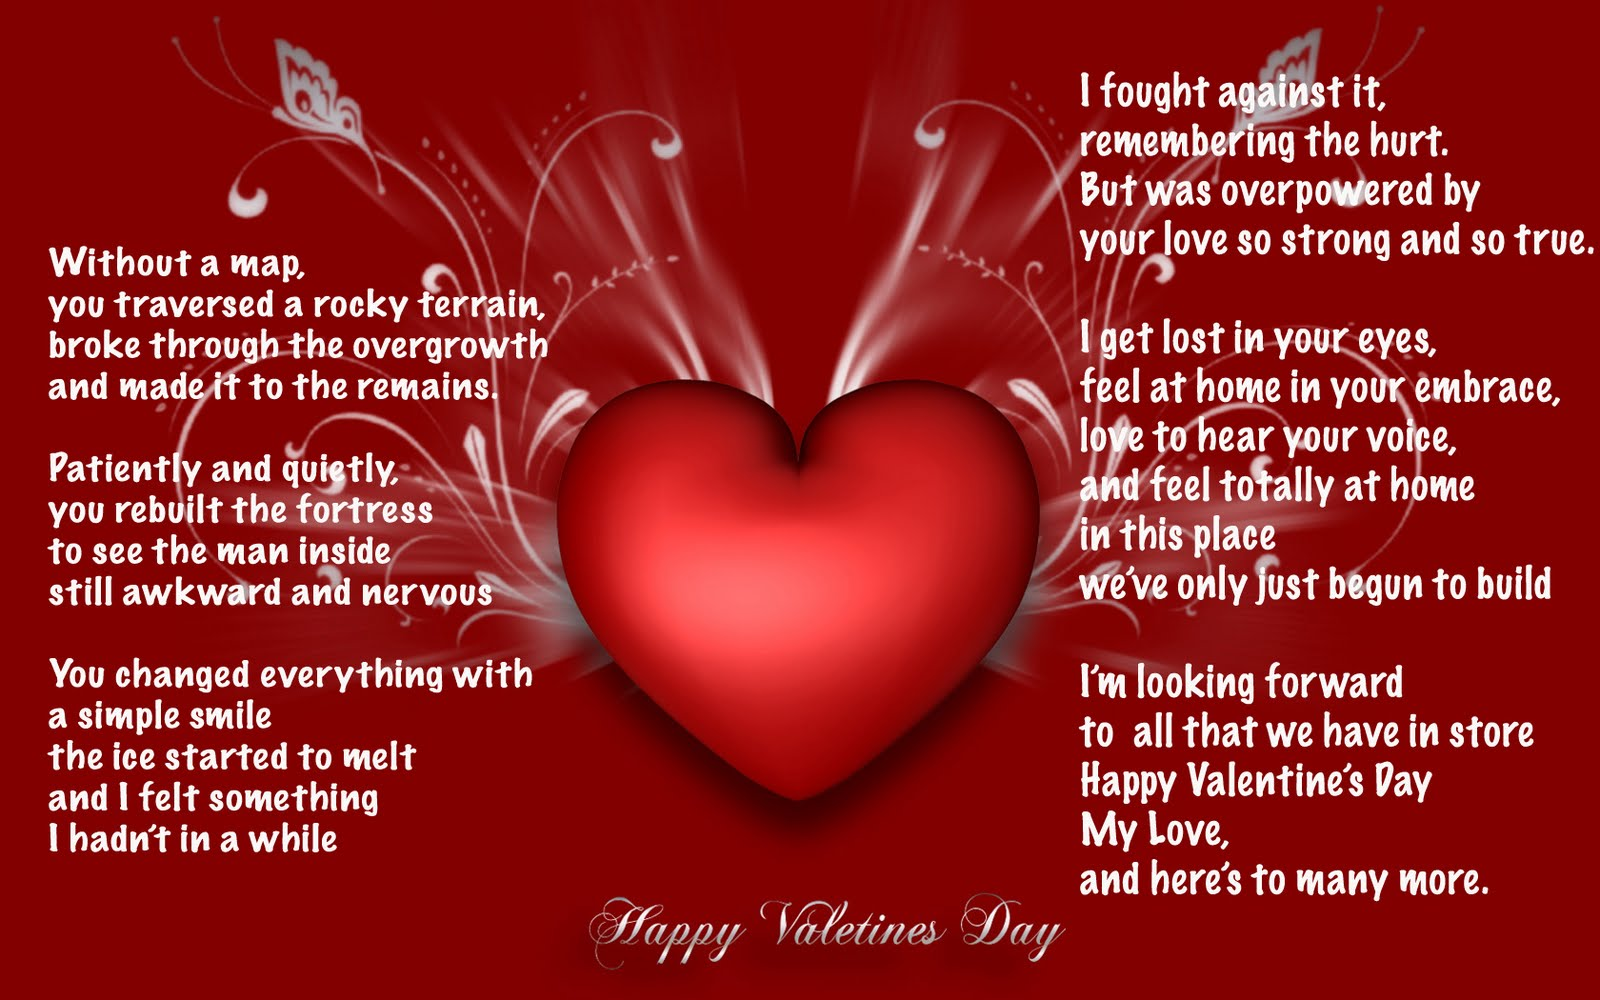 Valentines Day Quote For Wife: Happy Valentines To My Wife Quotes. QuotesGram